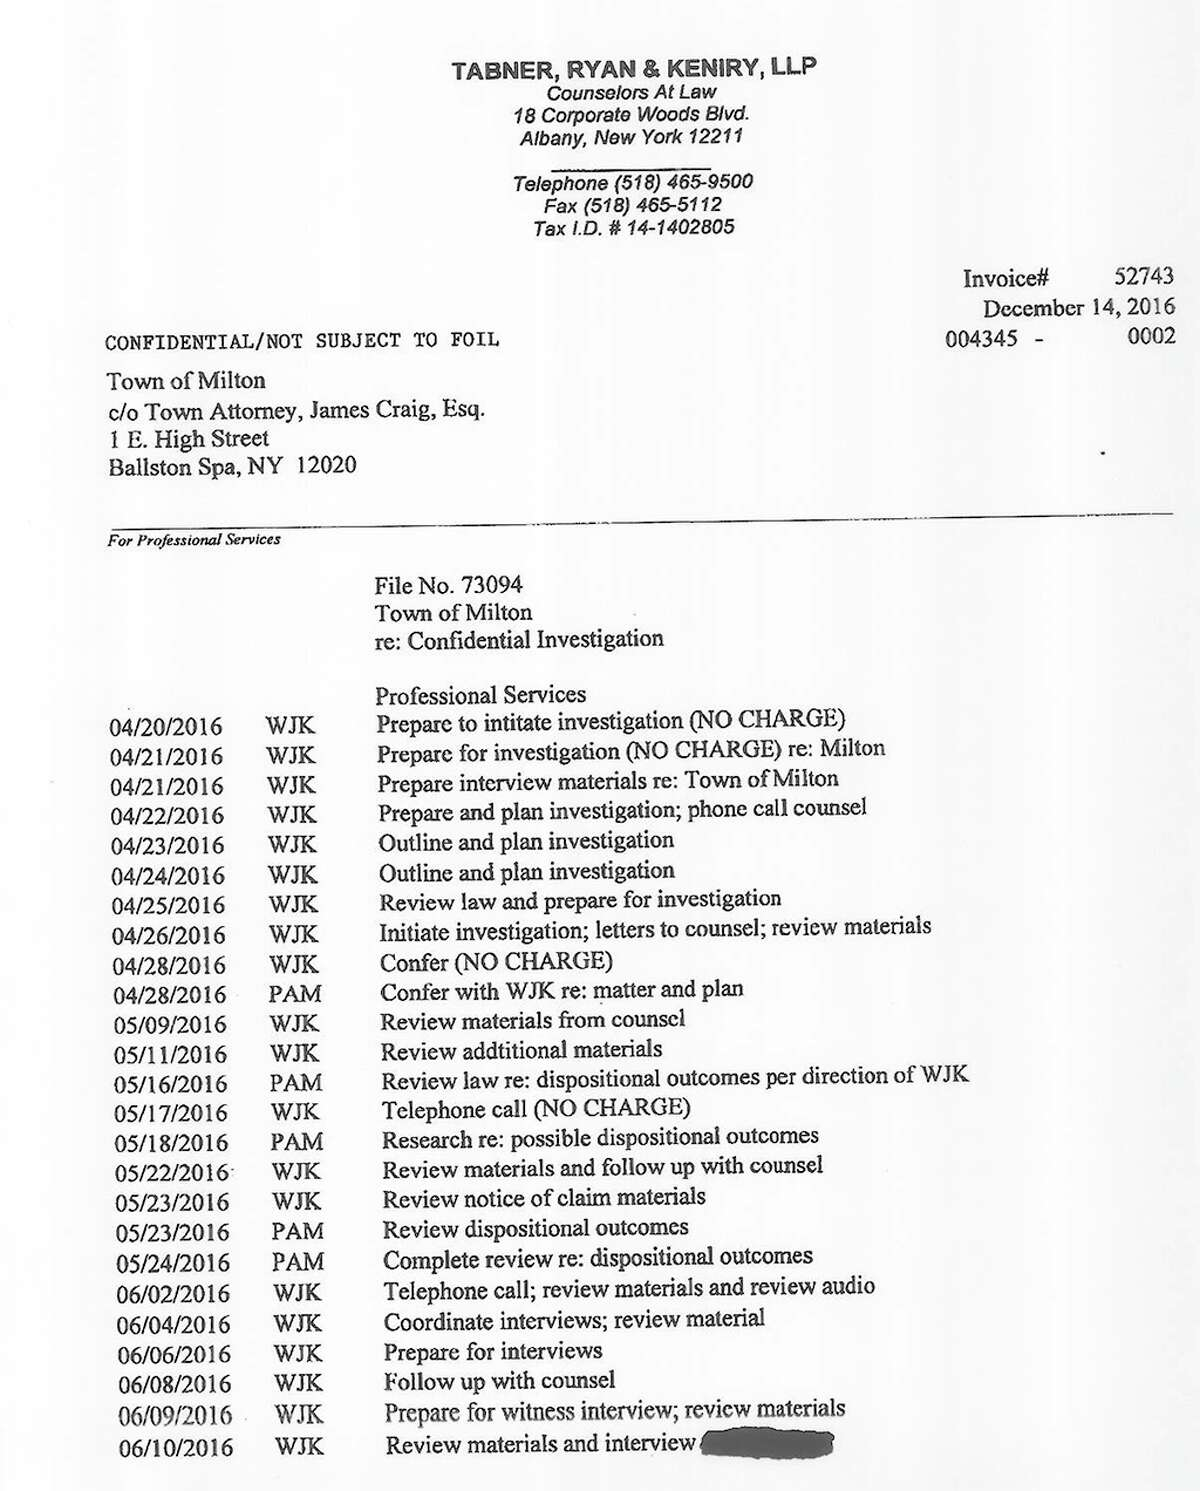 An itemized invoice from the law firm hired by Daniel P. Lewza to investigate town officials and others that Lewza suspected of leaking information about the case.